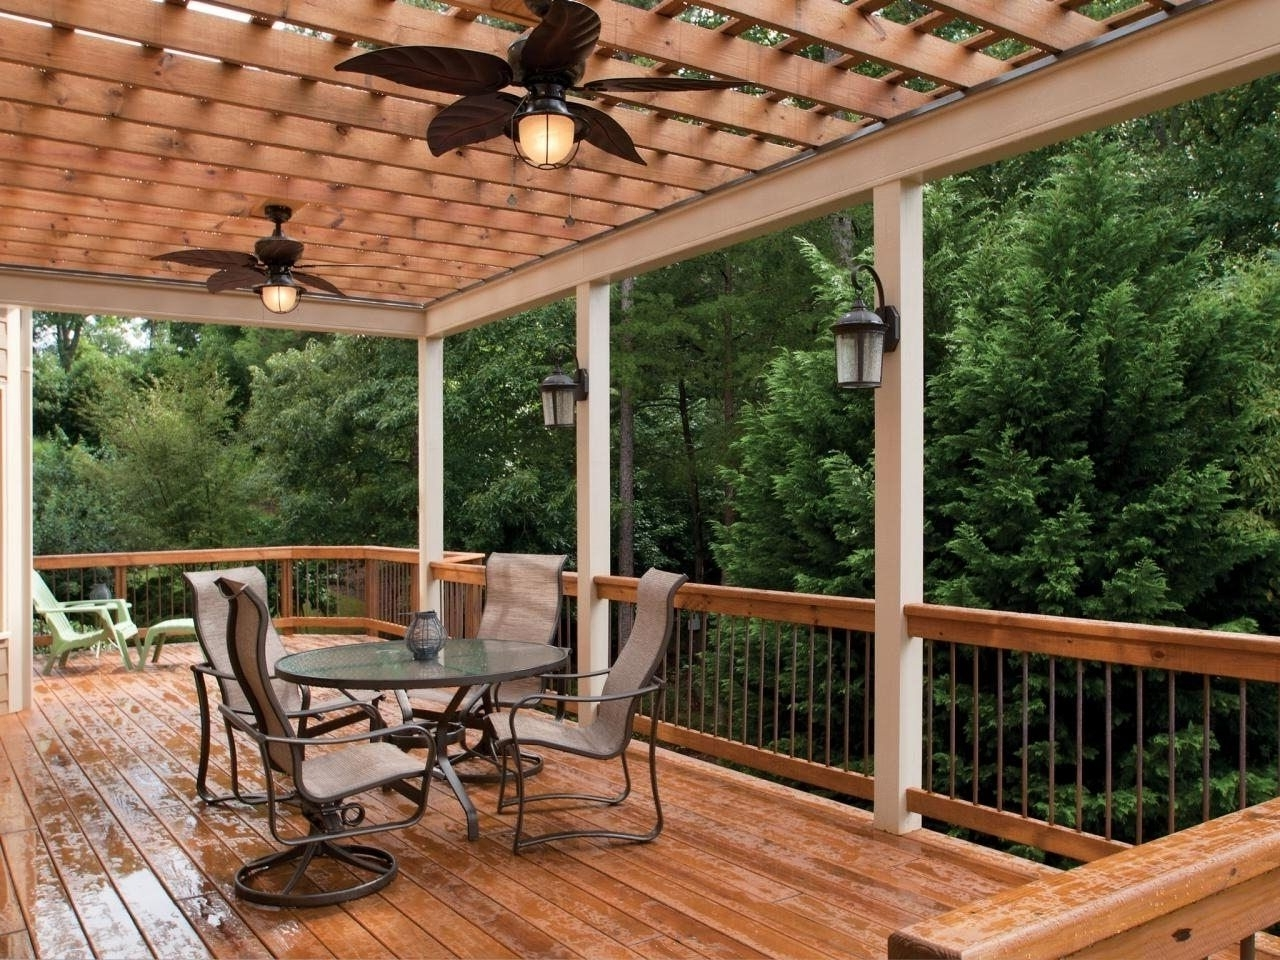 Outdoor Ceiling Fans For Pergola With Well Known Outdoor Pergola Ceiling Fan (View 13 of 20)